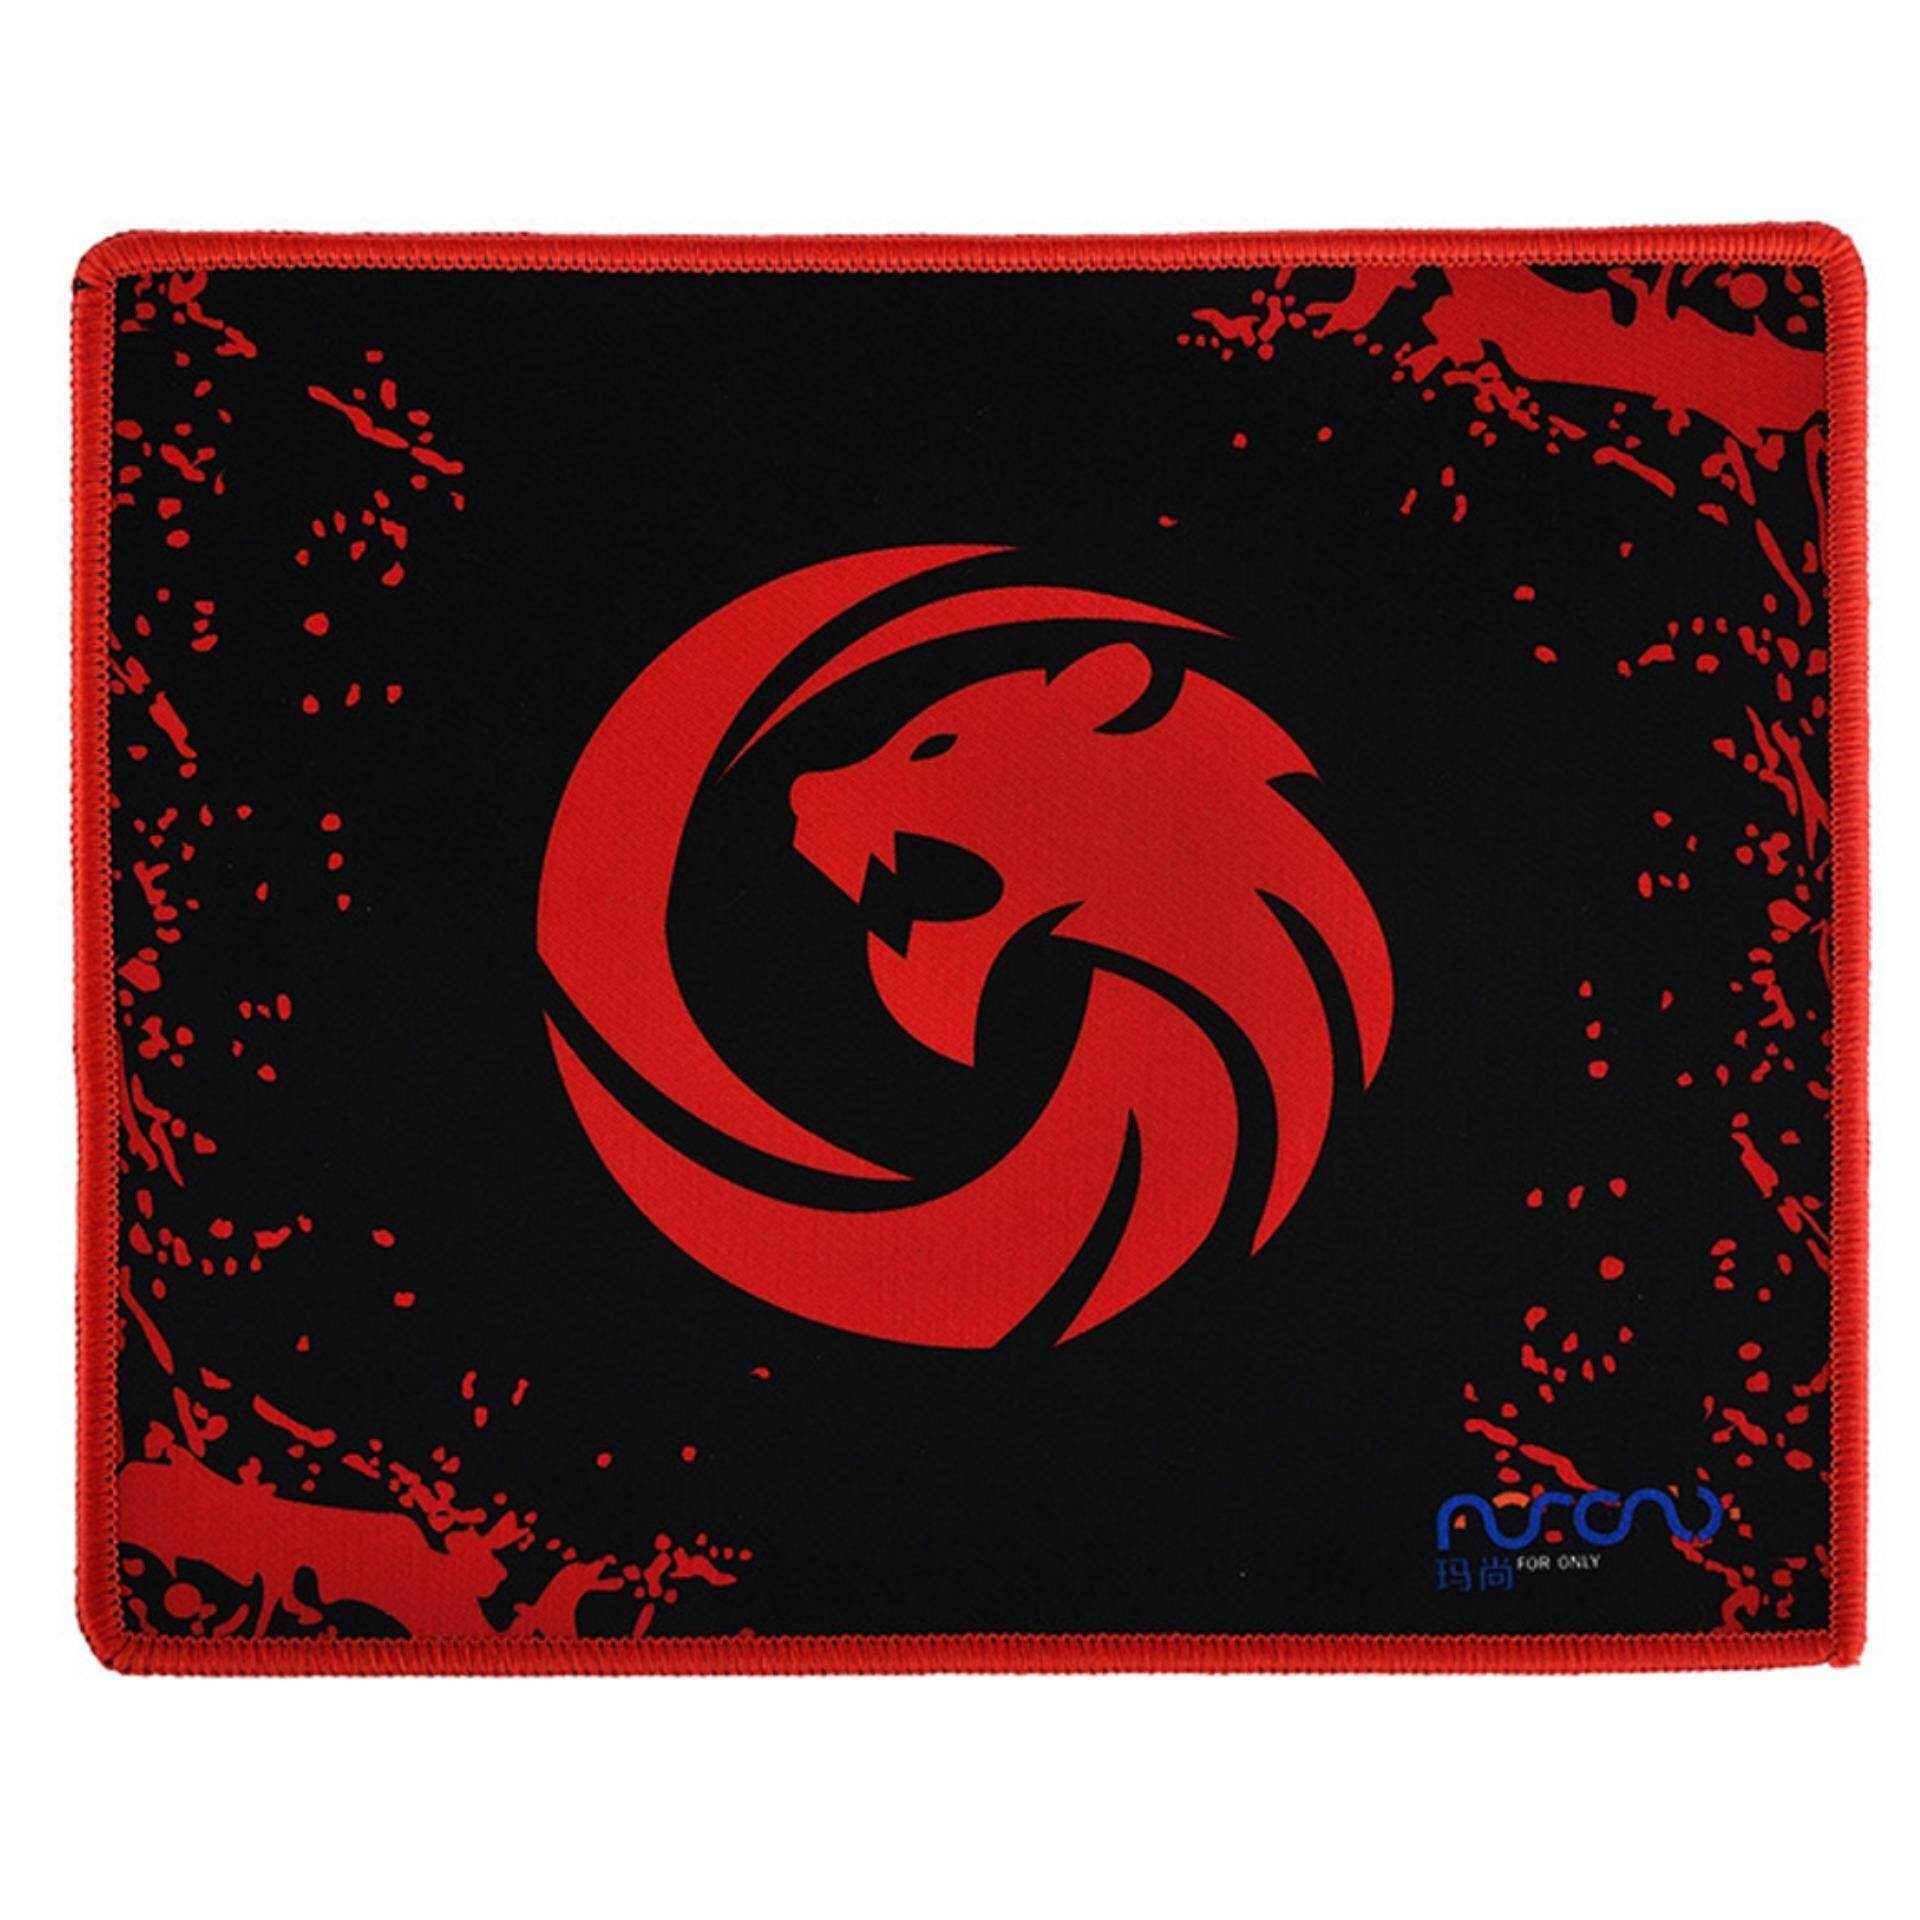 Gaming Mat Non-slip Anti Fray Stitching High Quality Beautiful Mouse Pad Malaysia